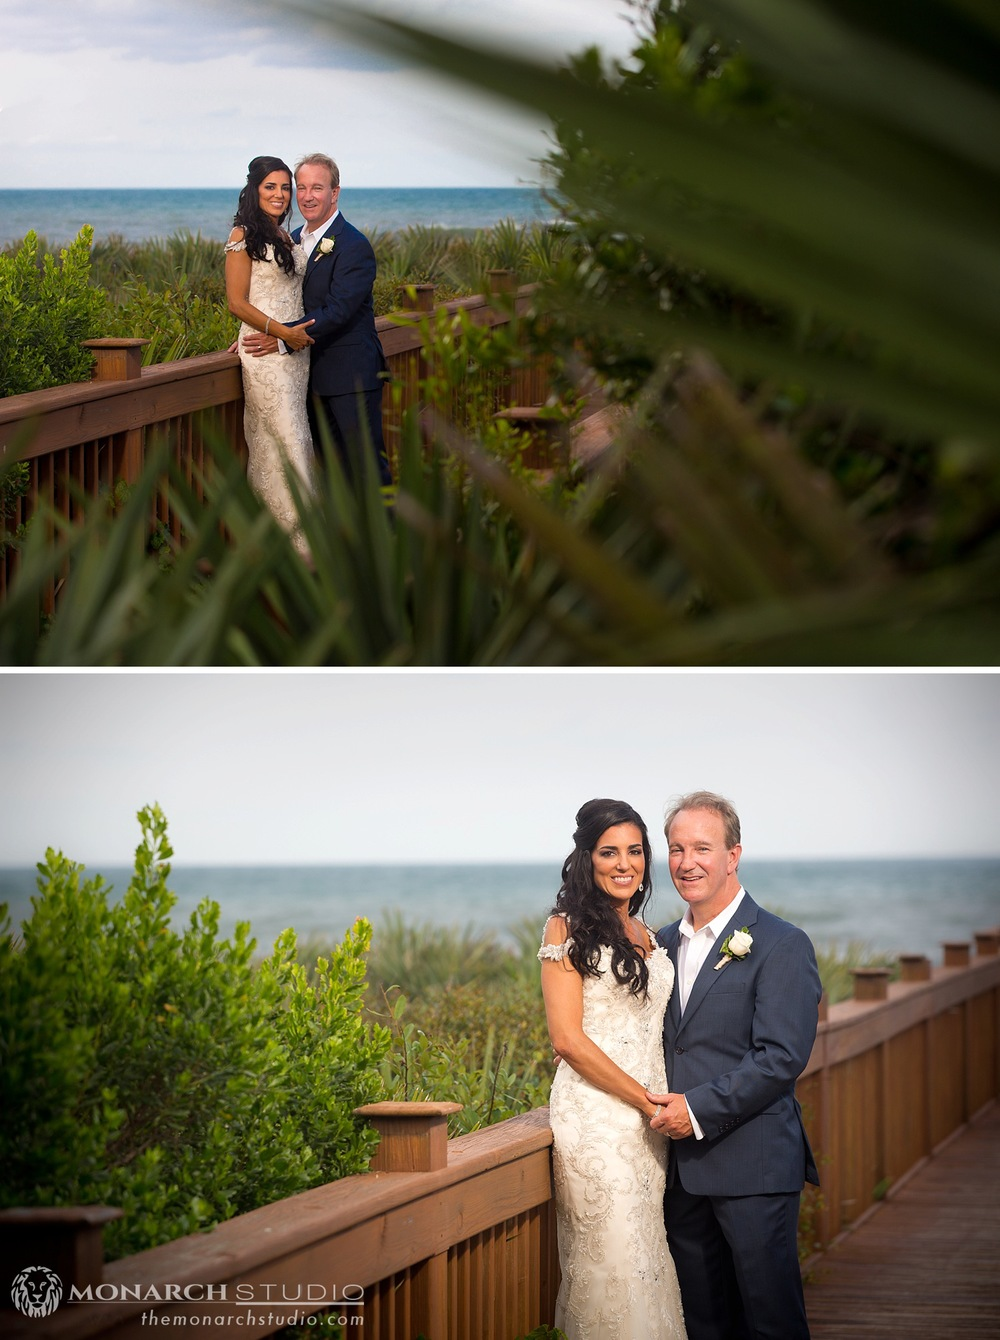 Hammock-Beach-Resort-Wedding-Photography-Palm-Coast-FL_0025.jpg